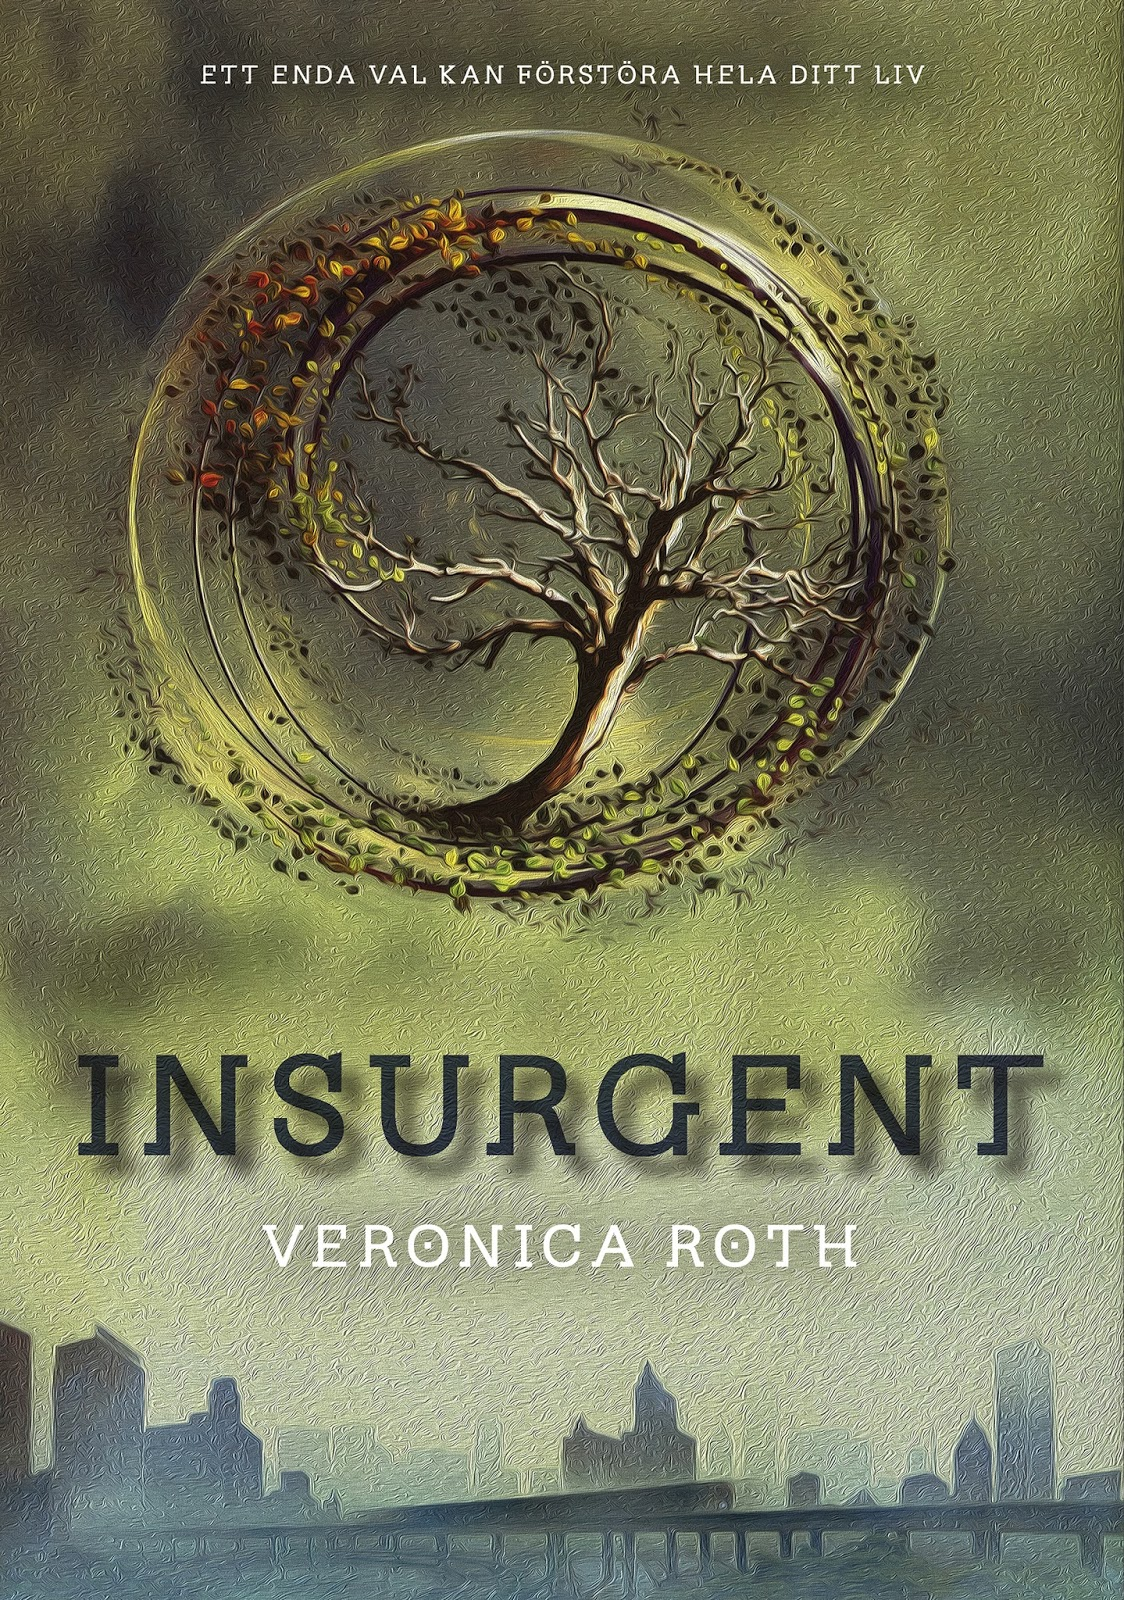 http://juliasnerdroom.blogspot.se/2013/11/insurgent-veronica-roth.html#comment-form